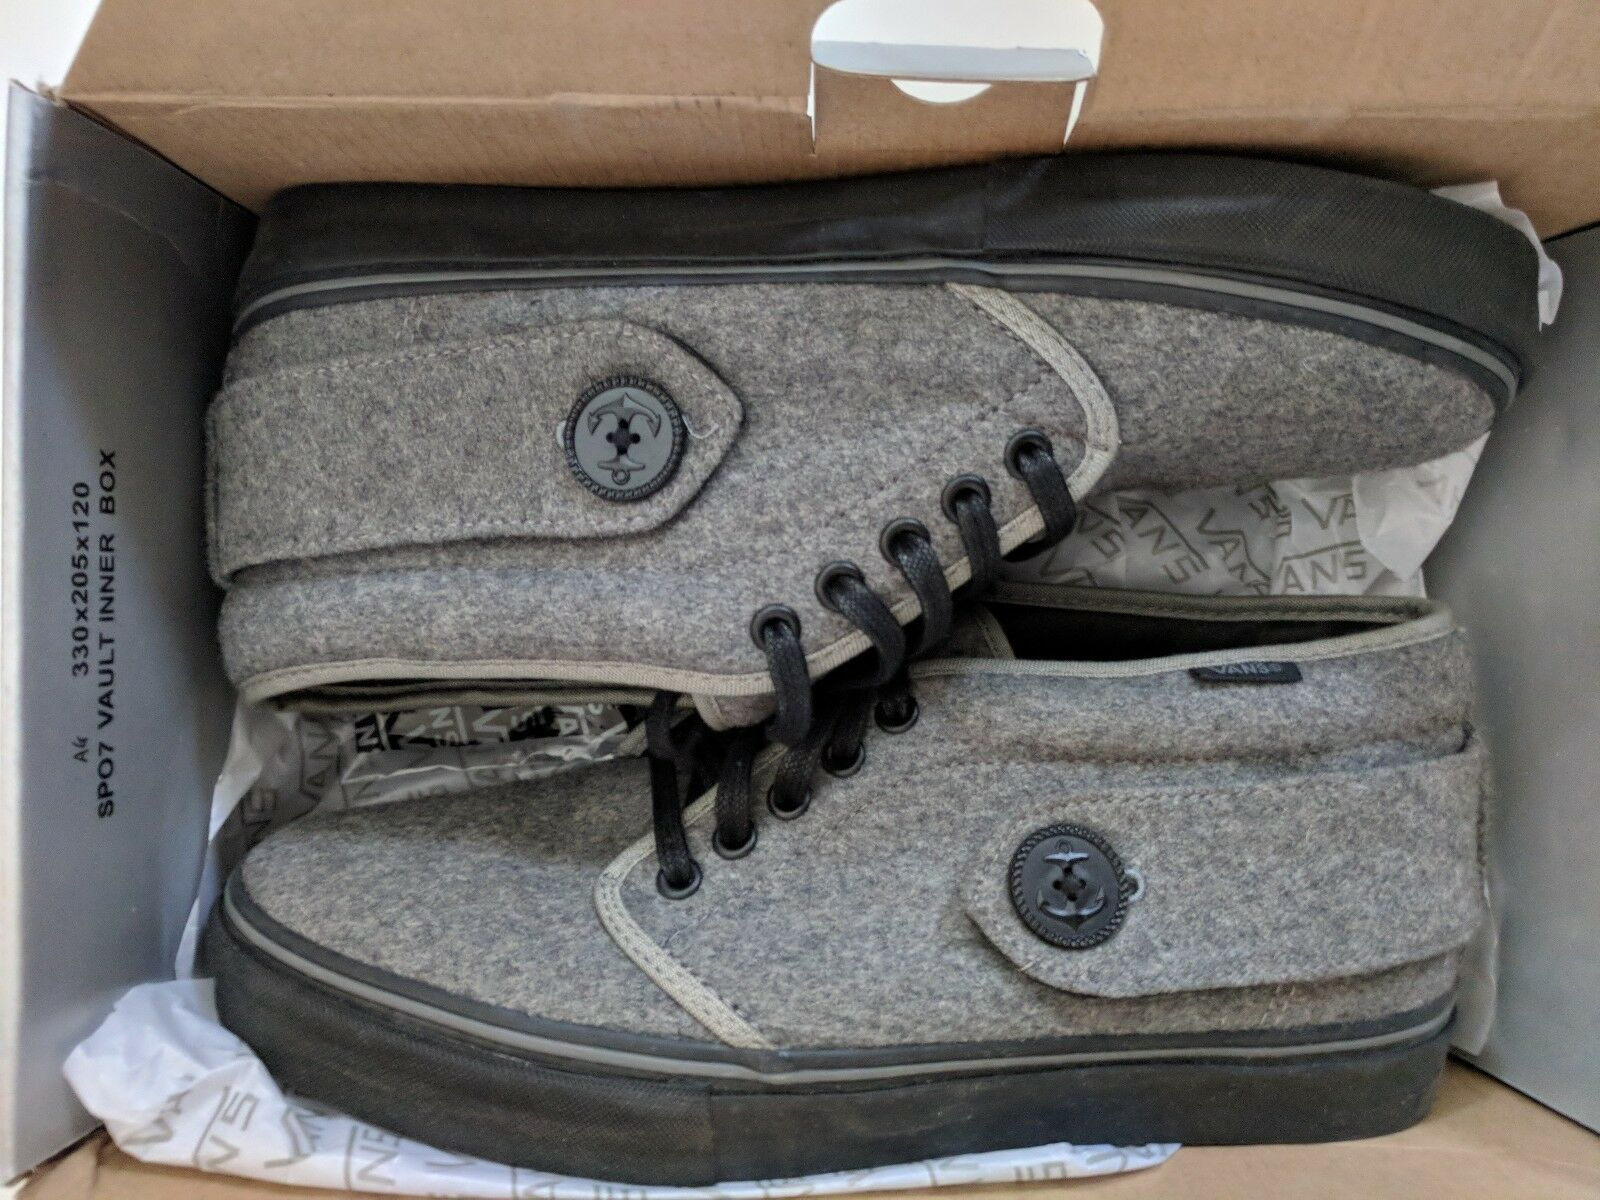 Vans Vault Peacoat LX Chukka Grey Pewter/Black sz 10 US